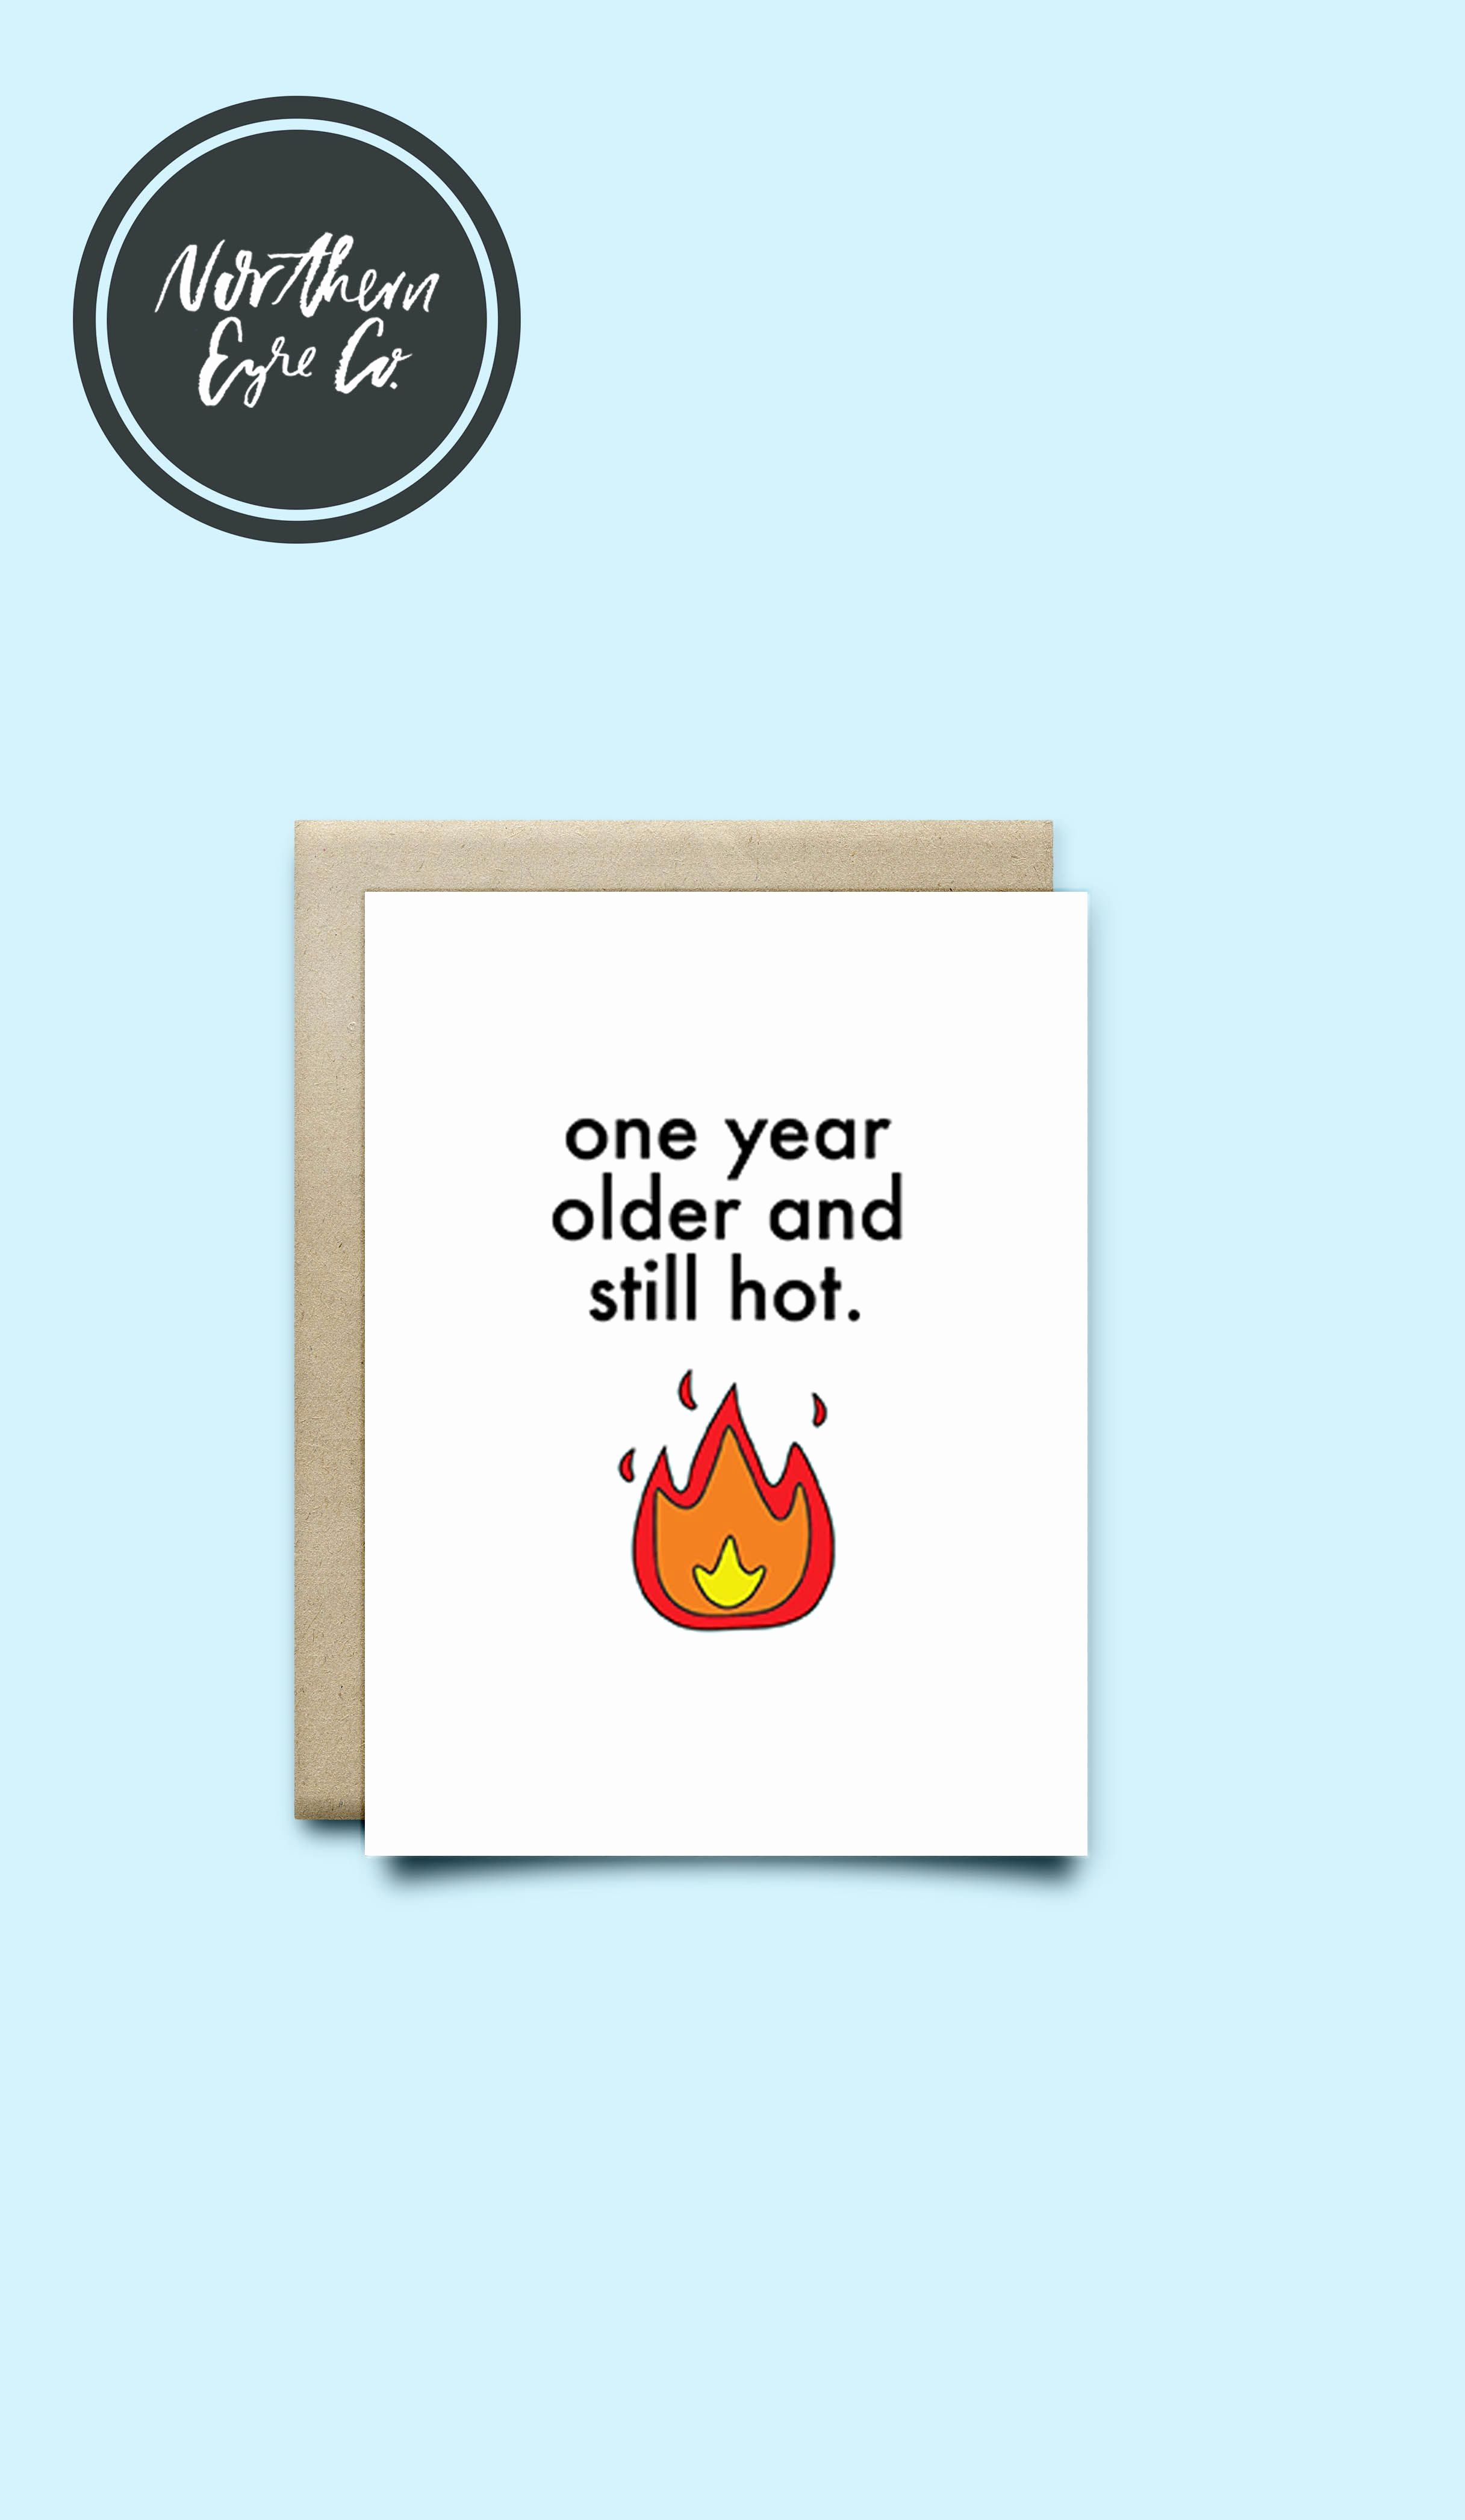 printable funny 70th birthday cards ; funny-70th-birthday-cards-beautiful-northern-eyre-co-printable-birthday-card-works-for-your-of-funny-70th-birthday-cards